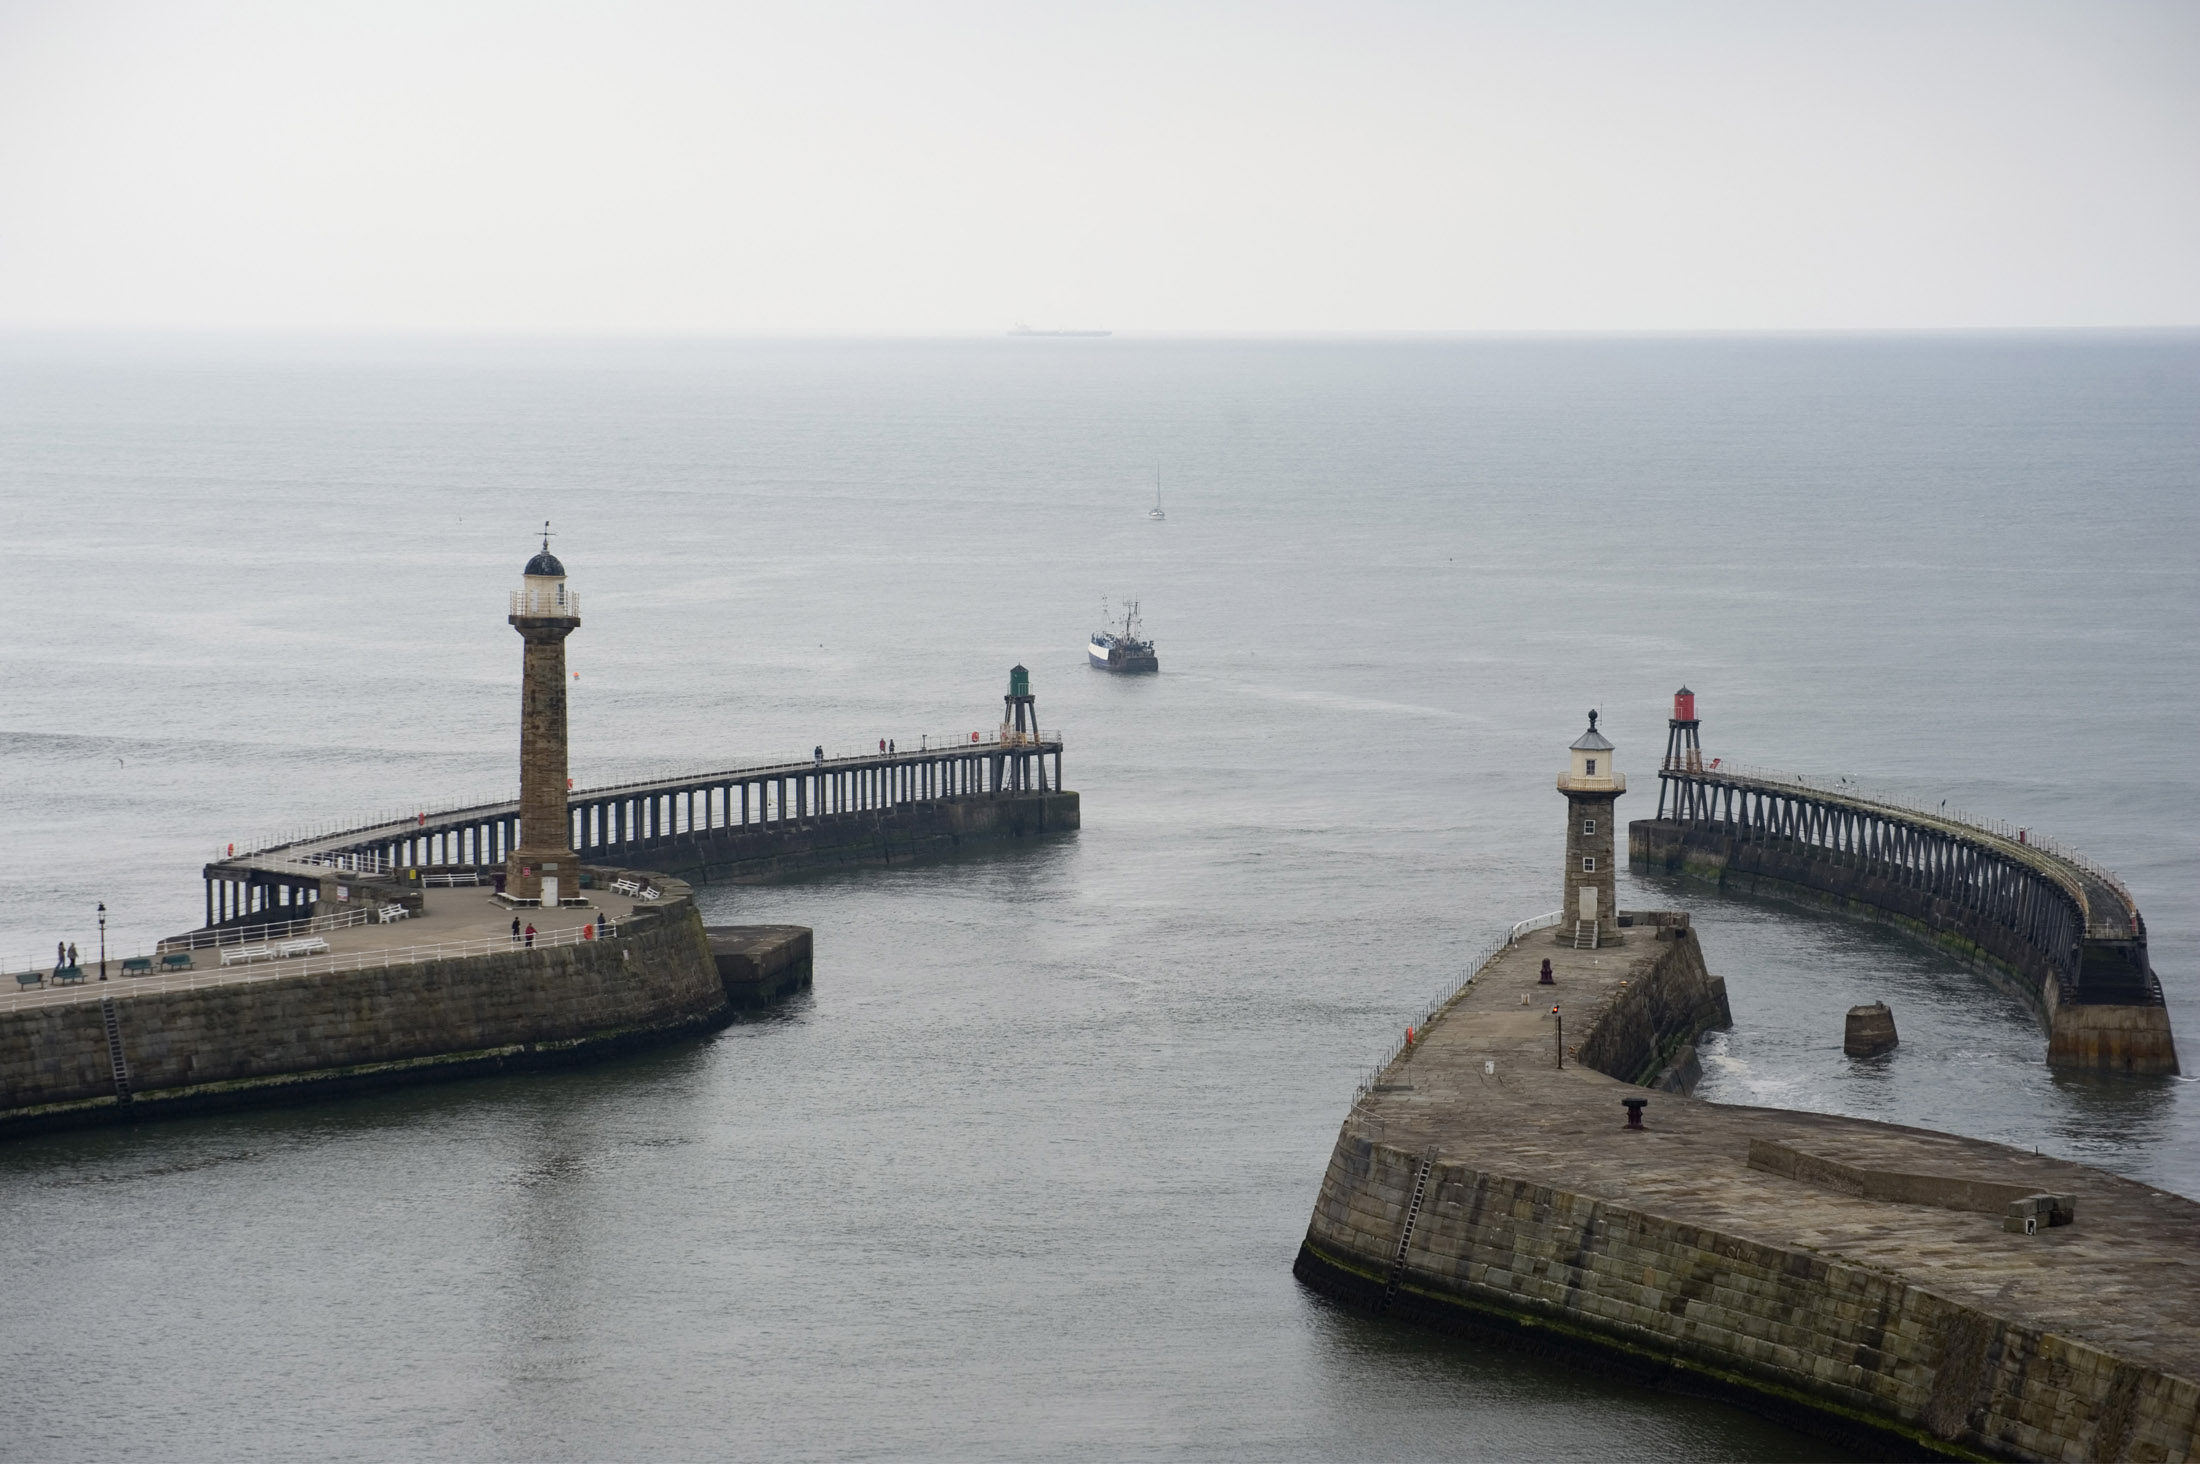 two large harbour piers protect the lower harbour from the sea, on the ends are two breakwaters which further reduce the swell entering the bay